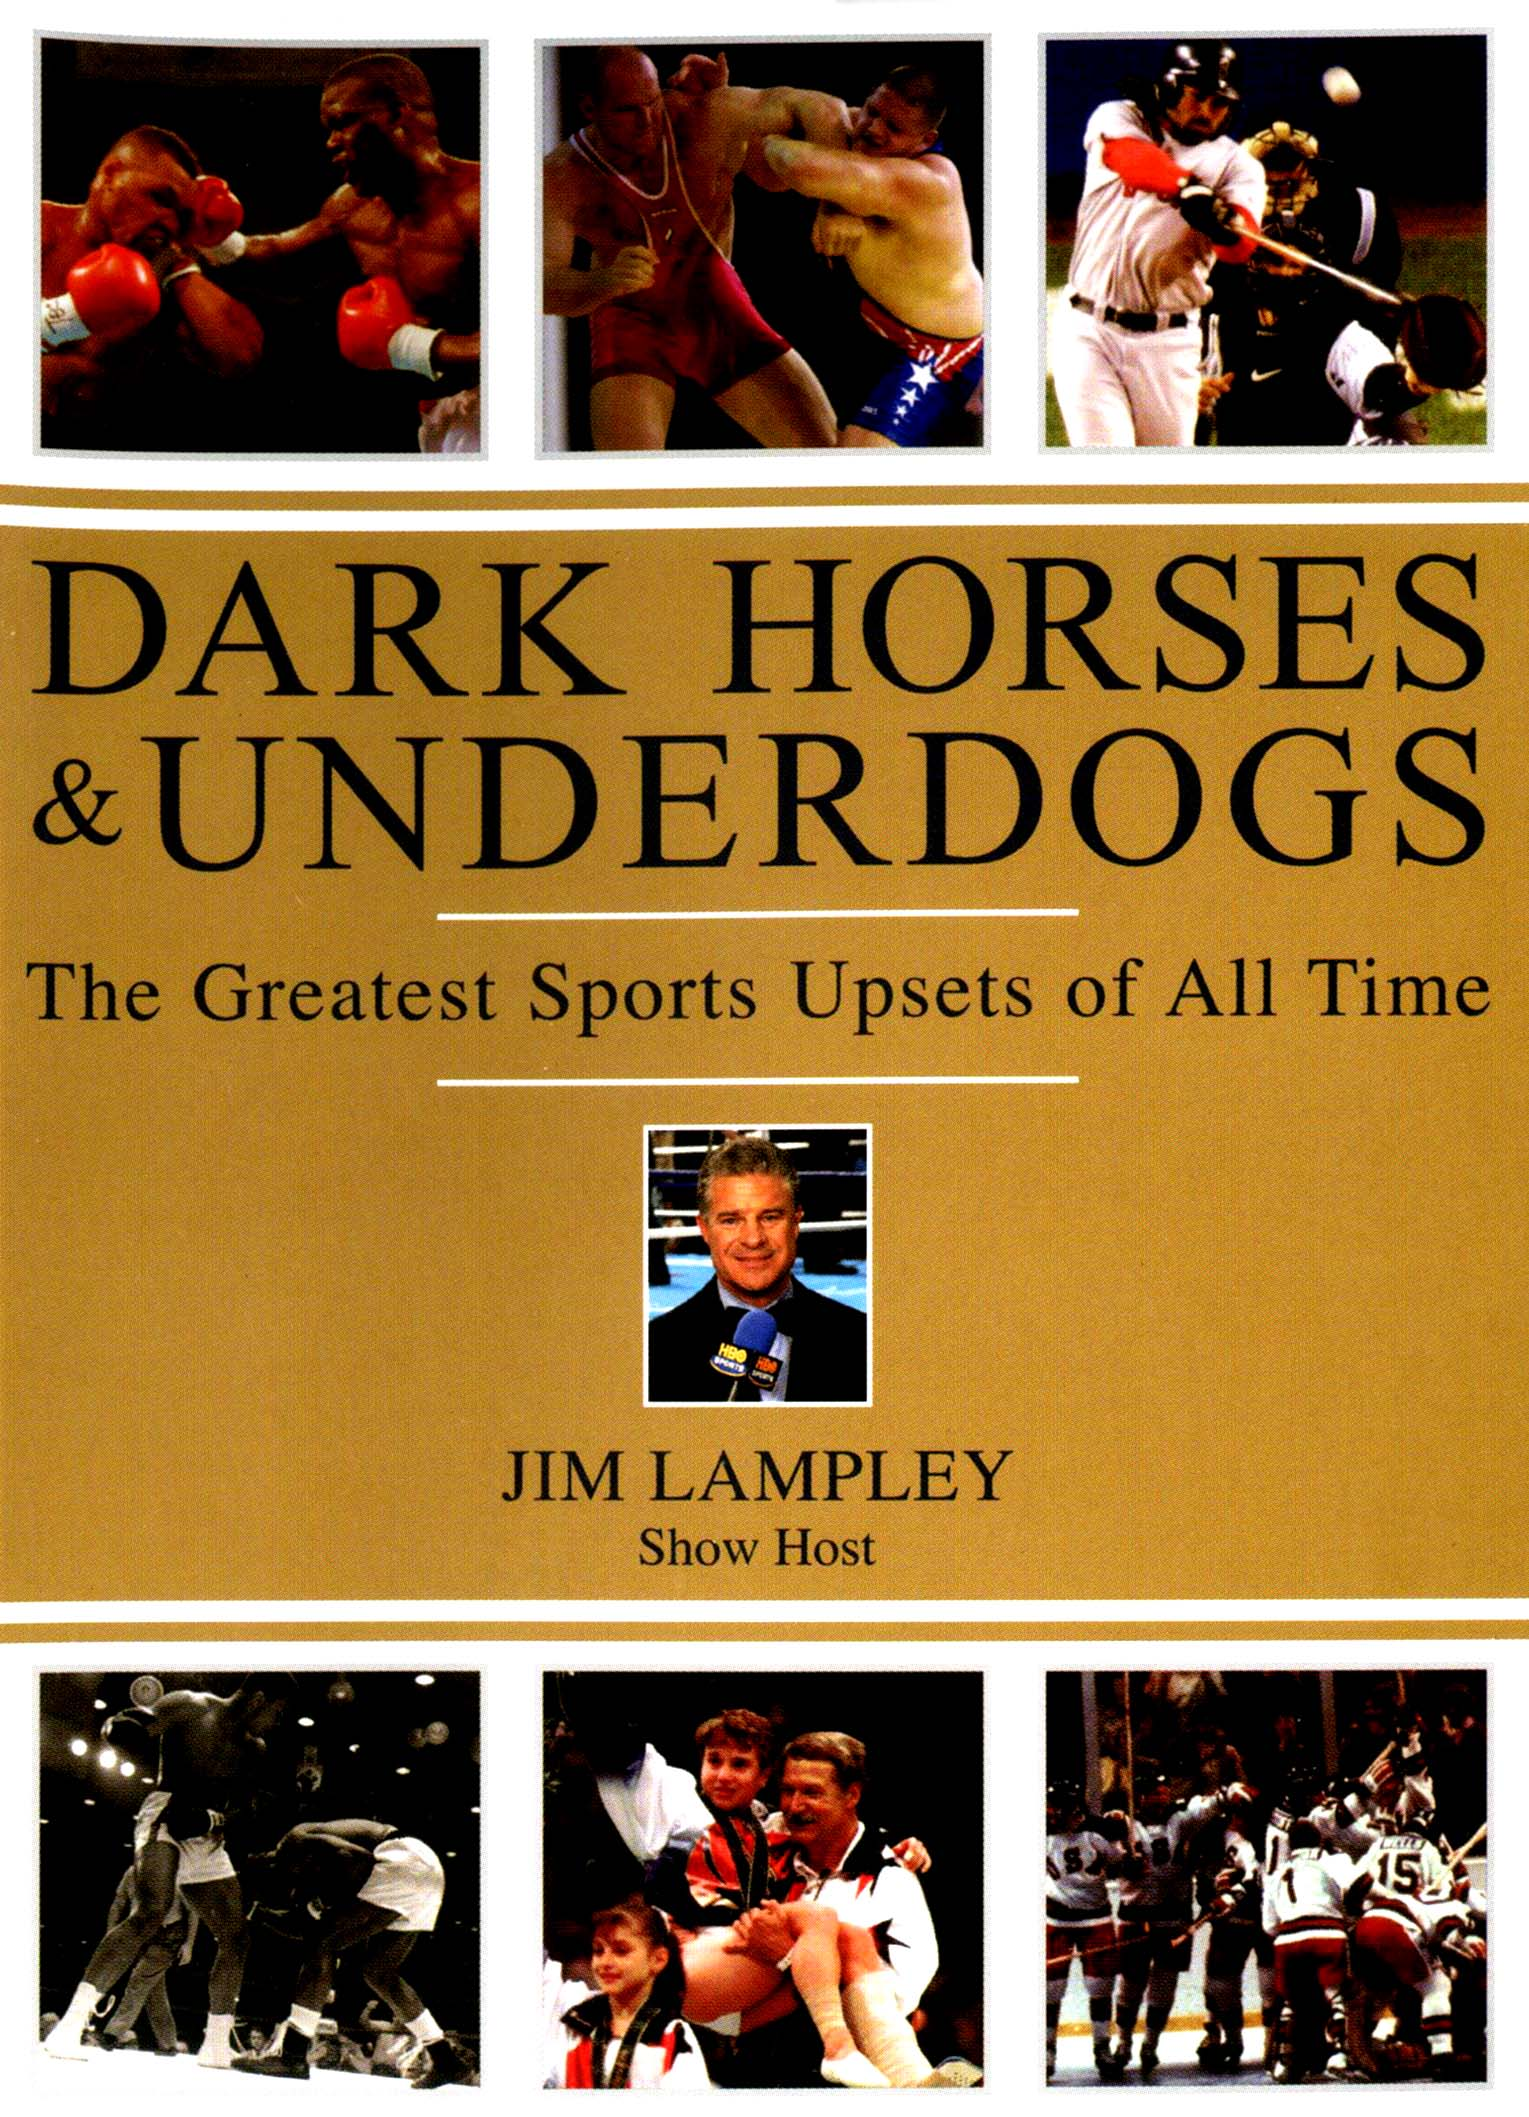 Dark Horses & Underdogs: The Greatest Sports Upsets of All Time